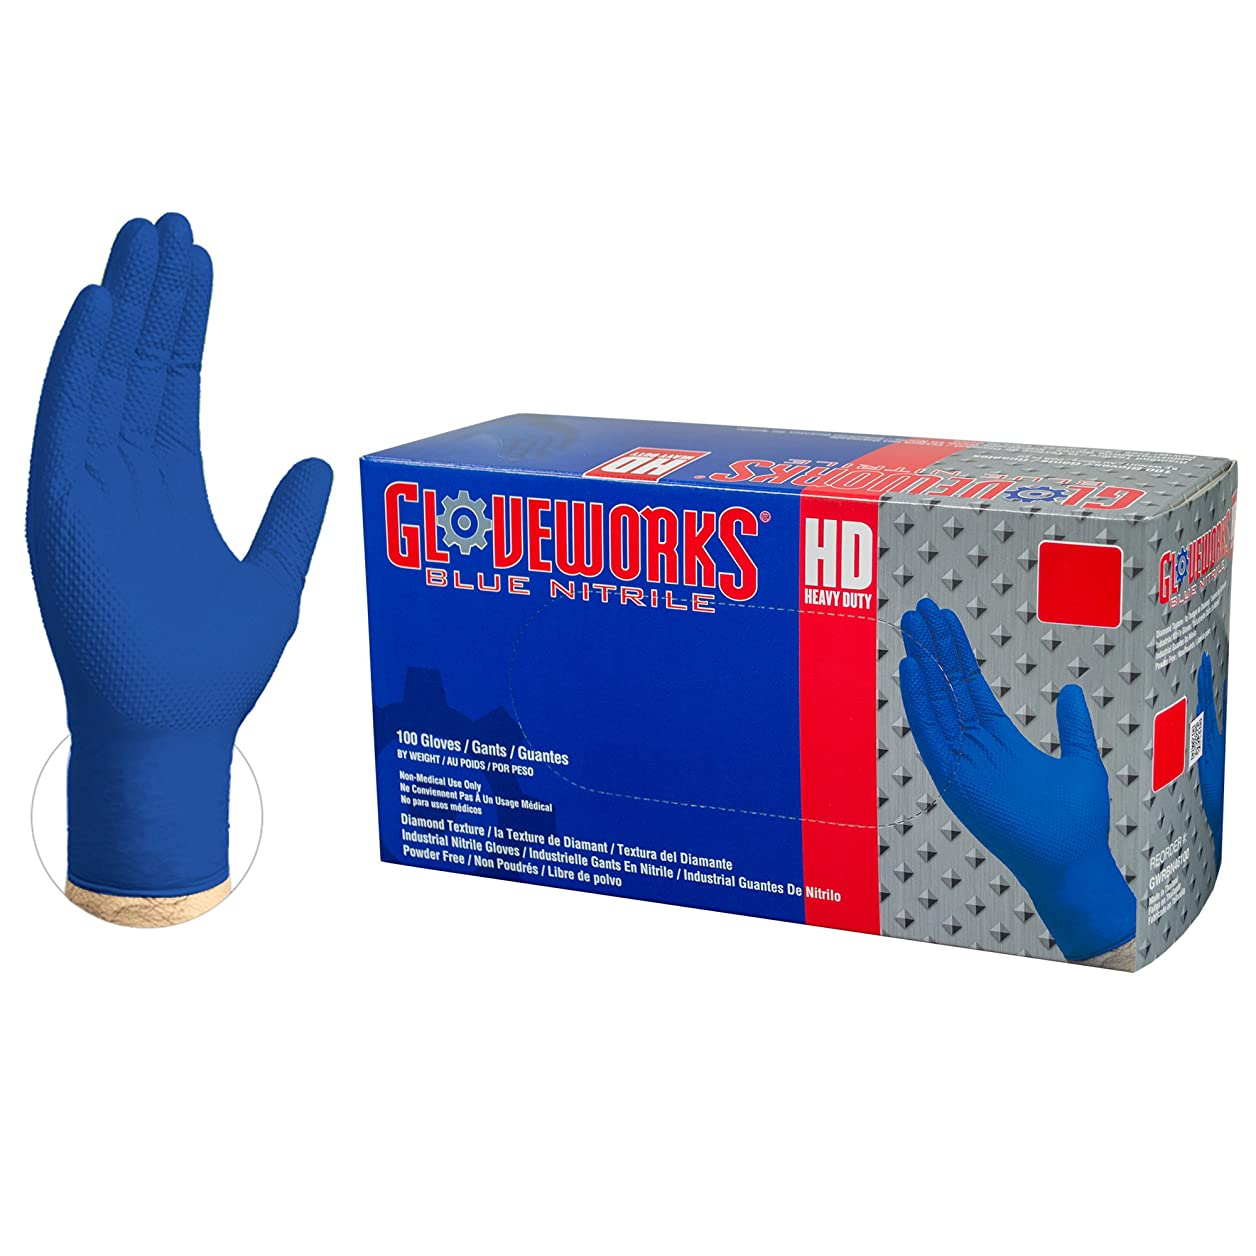 AMMEX Heavy Duty Blue Nitrile 6 Mil Disposable Gloves - Diamond Texture, Industrial, Powder Free, Large, Box of 100 vrxgawdjcowinfov